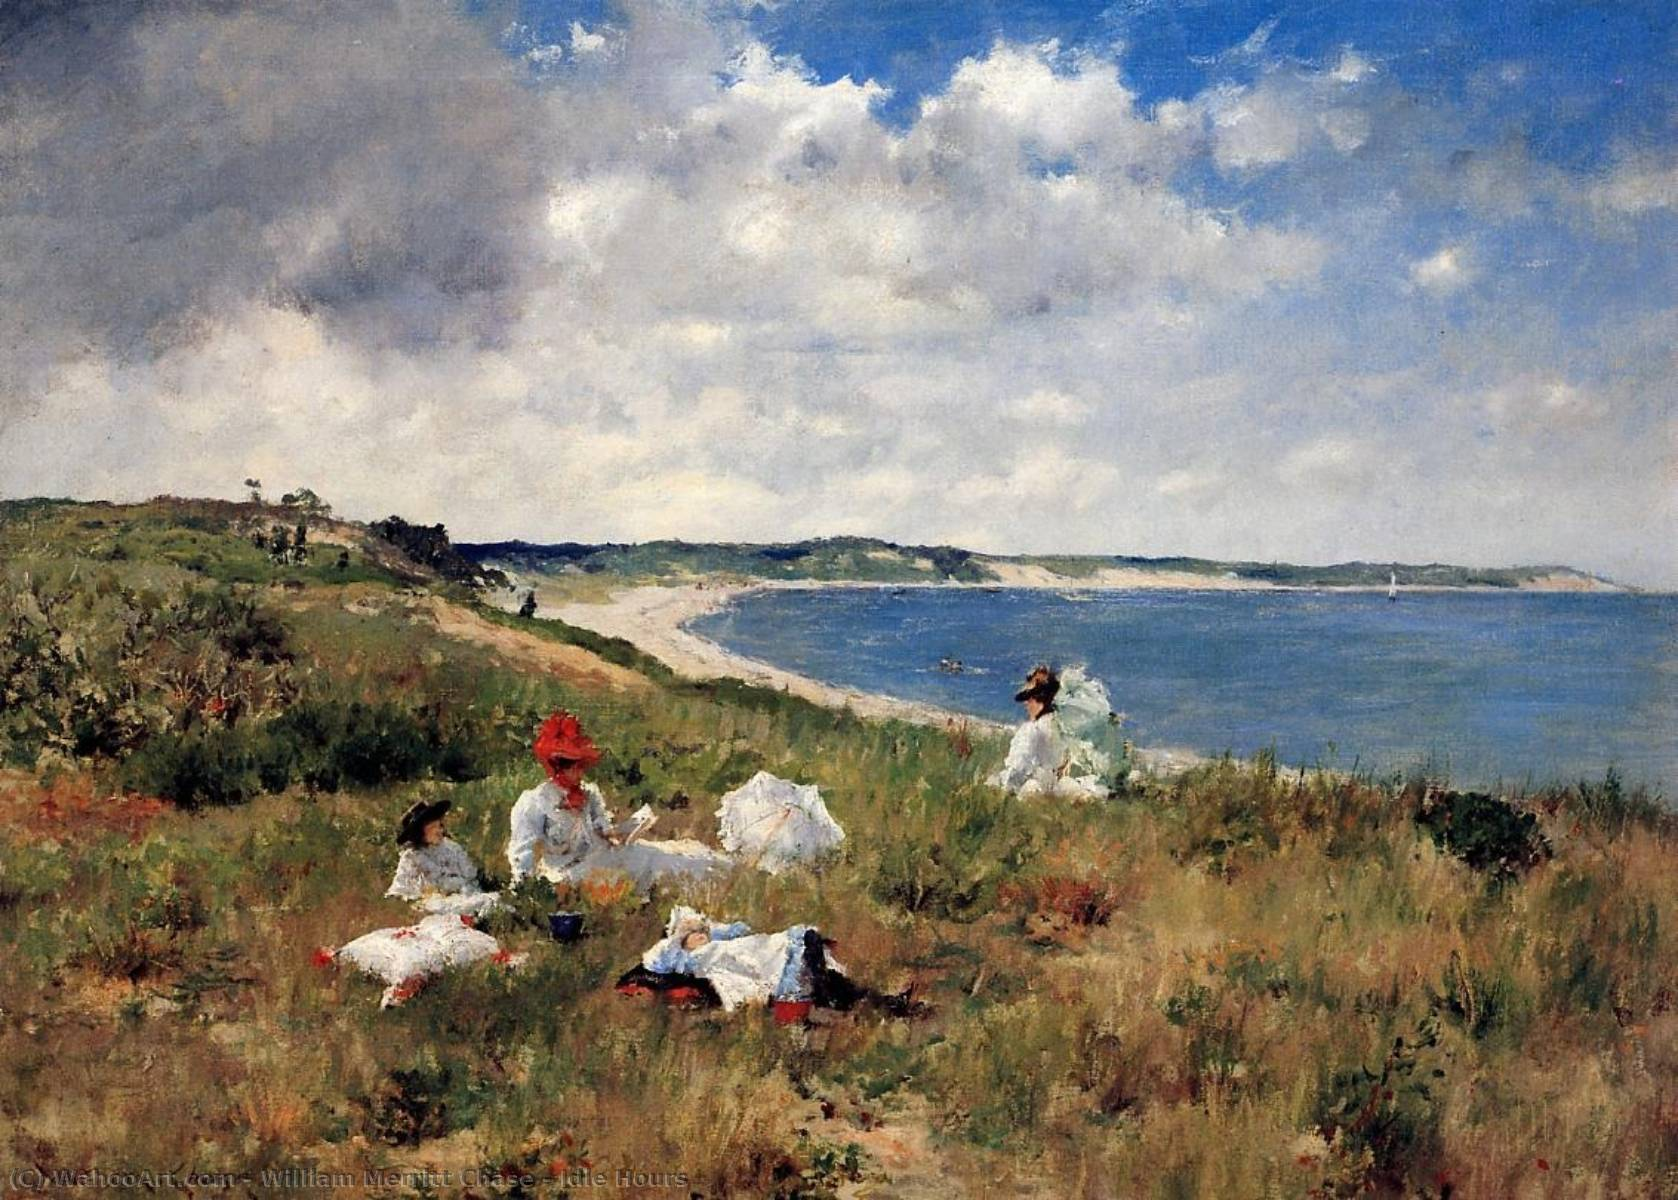 famous painting tourner au ralenti heures  of William Merritt Chase